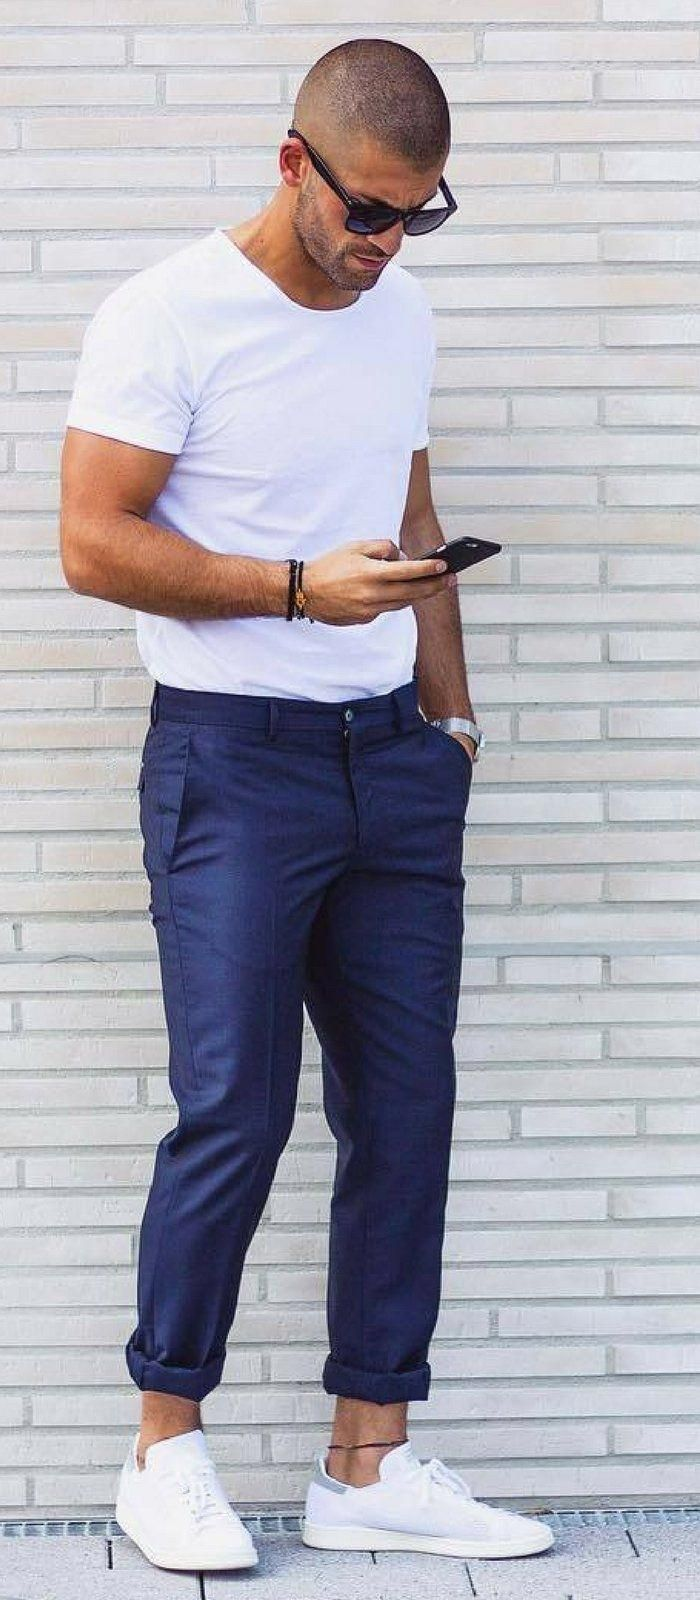 15 Coolest Outfit Ideas For The Summers Corry Webb#Coolest #Corry #Ideas #Outfit…